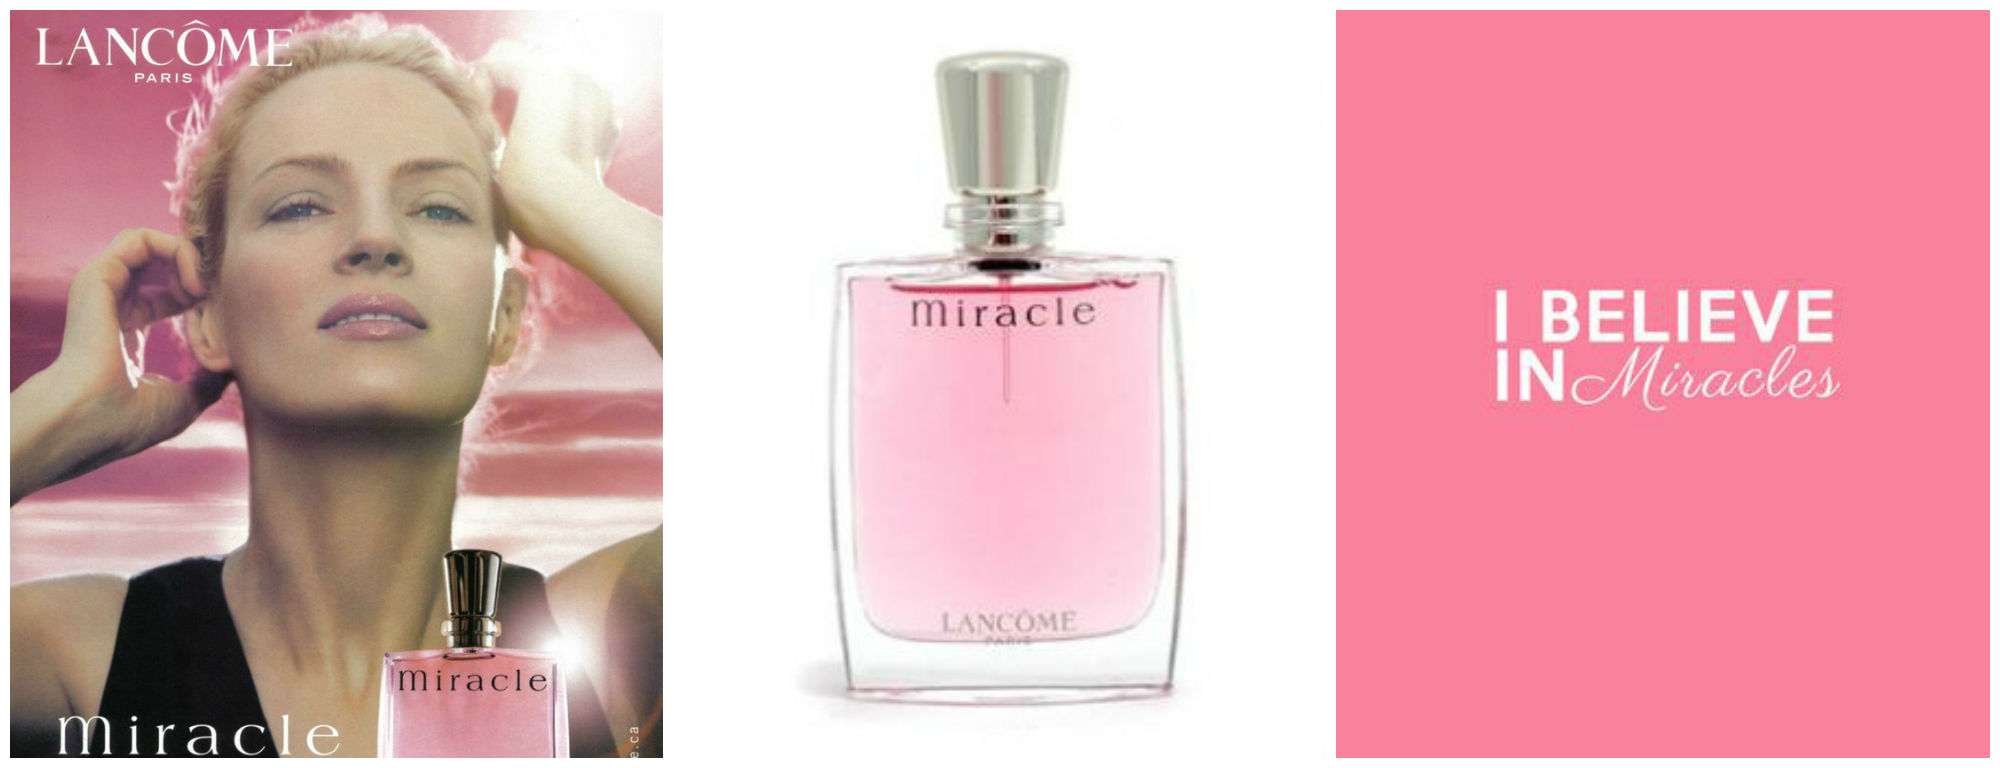 Perfume of the Day: Miracle by Lancome